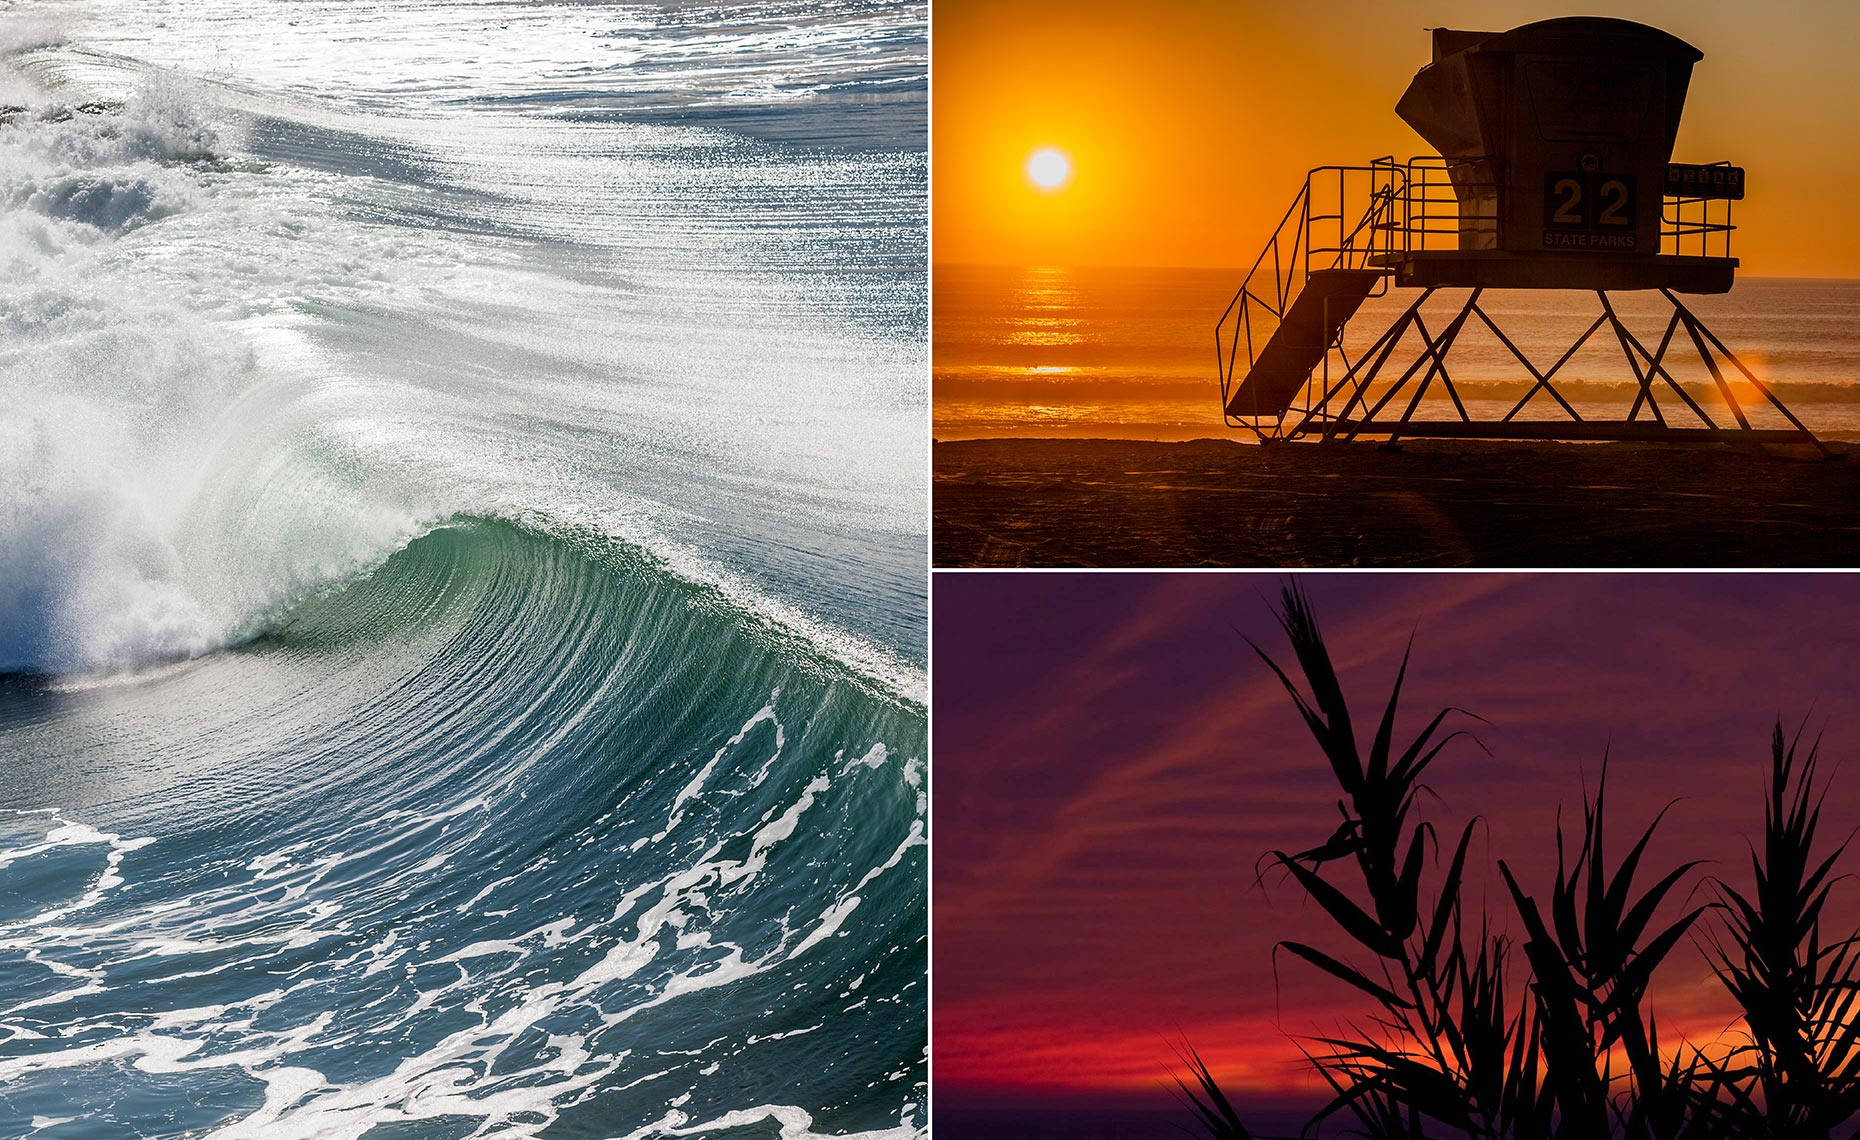 13_Oceanside_Waves_Barrel_Carlsbad_Sunset_Lifeguard_Tower_California_Environment_Landscape_Chris_Wellhausen_Photography.JPG